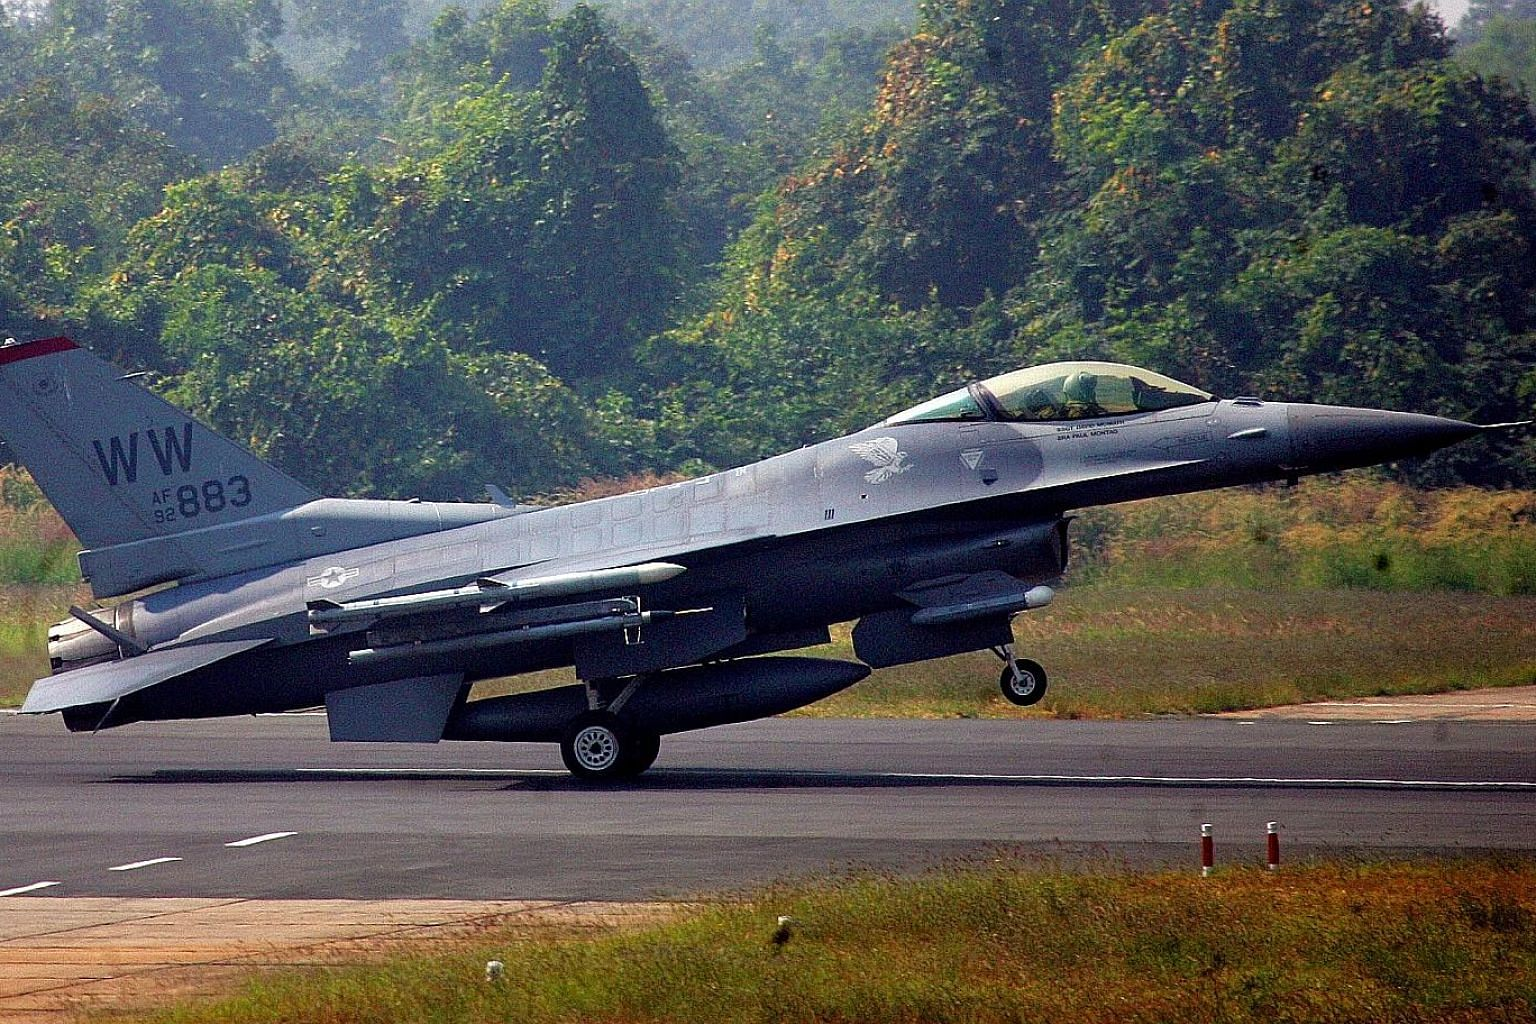 A file photo of an F-16 from the US military in action during a joint India-US air force exercise in India. Lockheed Martin has offered to move its F-16 production line to India from Texas, and make it the sole factory worldwide if New Delhi orders a